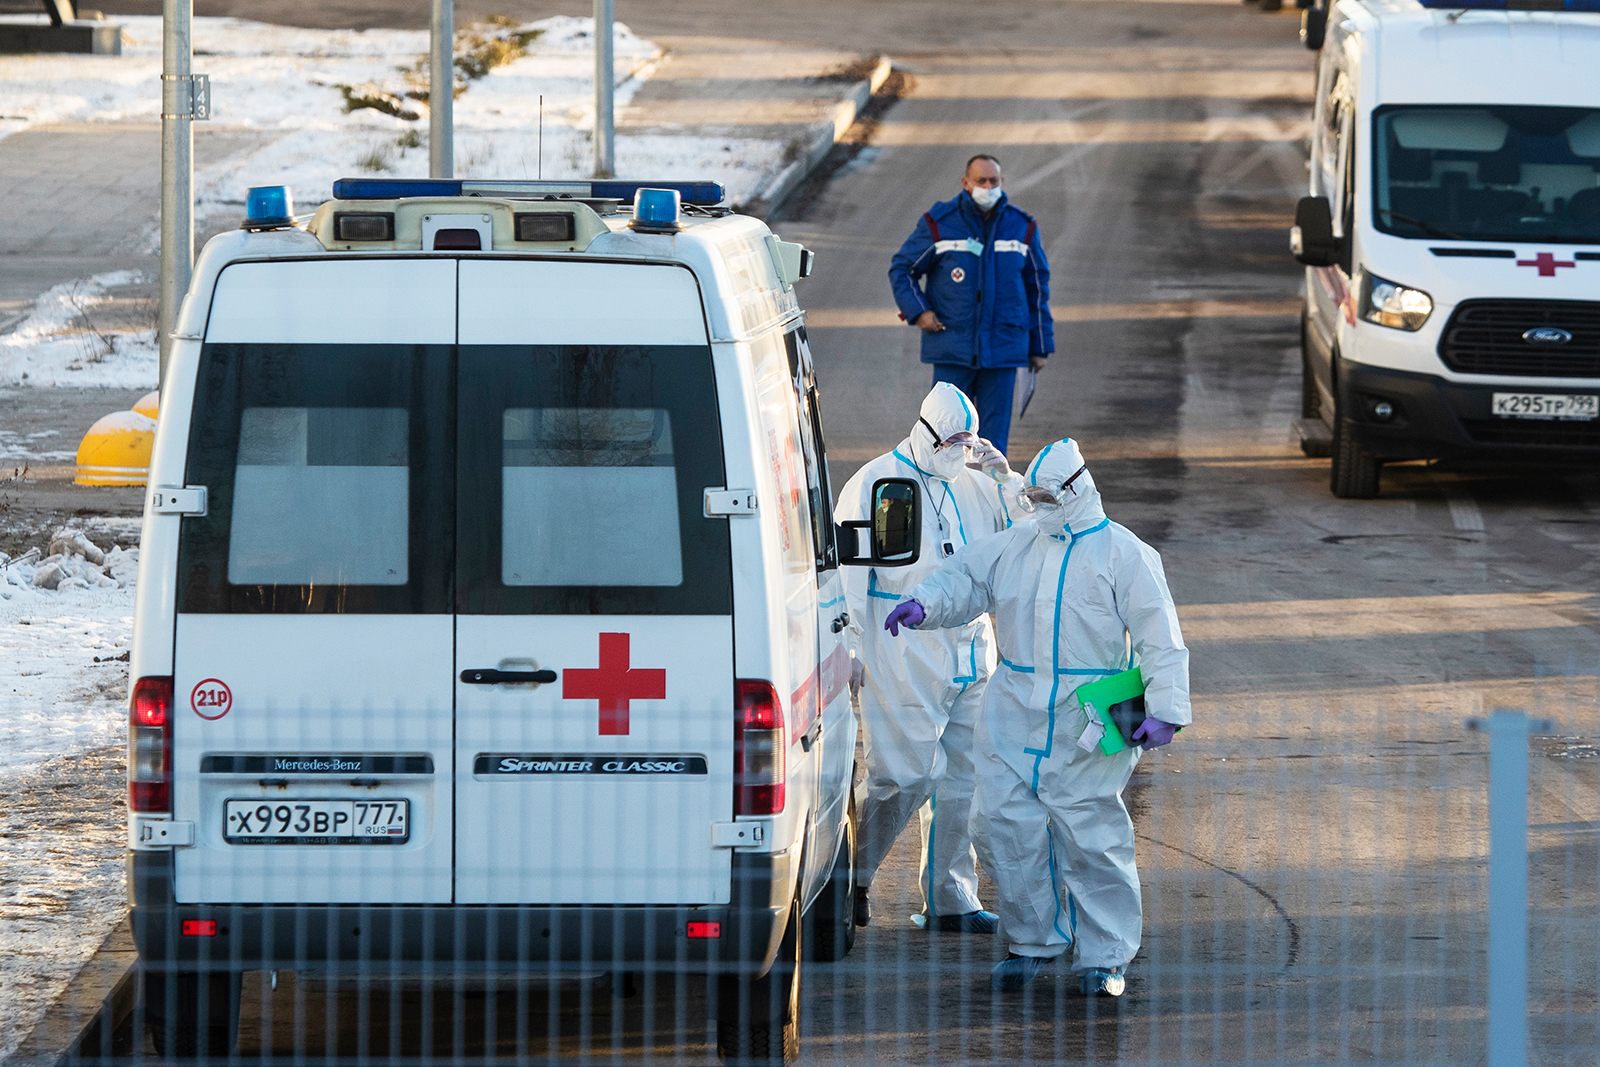 Medical workers wearing protective gear return to their ambulance after transferring a patient suspected of having Covid-19 at a hospital in Kommunarka, outside Moscow, on December 5.